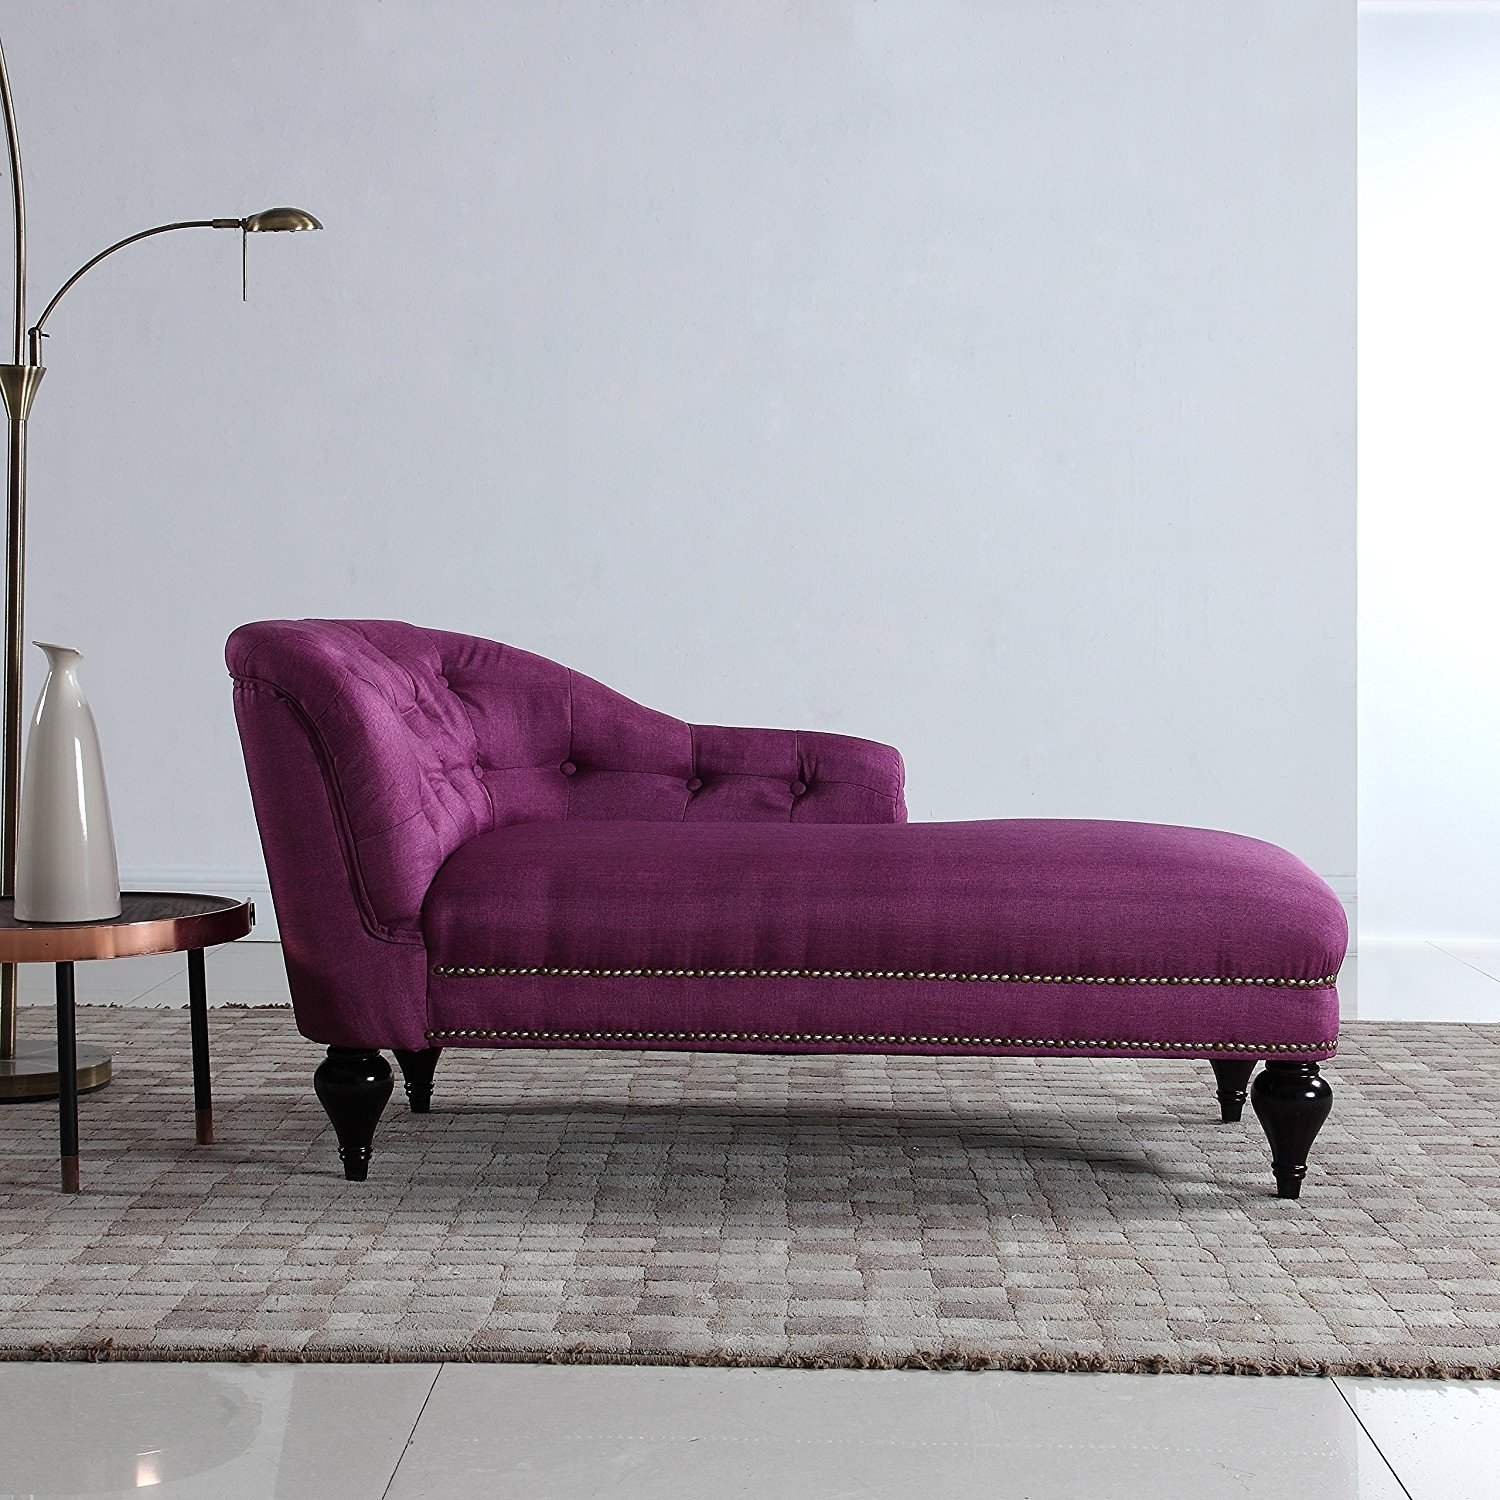 Details About Modern And Elegant Kid S Chaise Lounge For Living Room Or Bedroom Rose Red